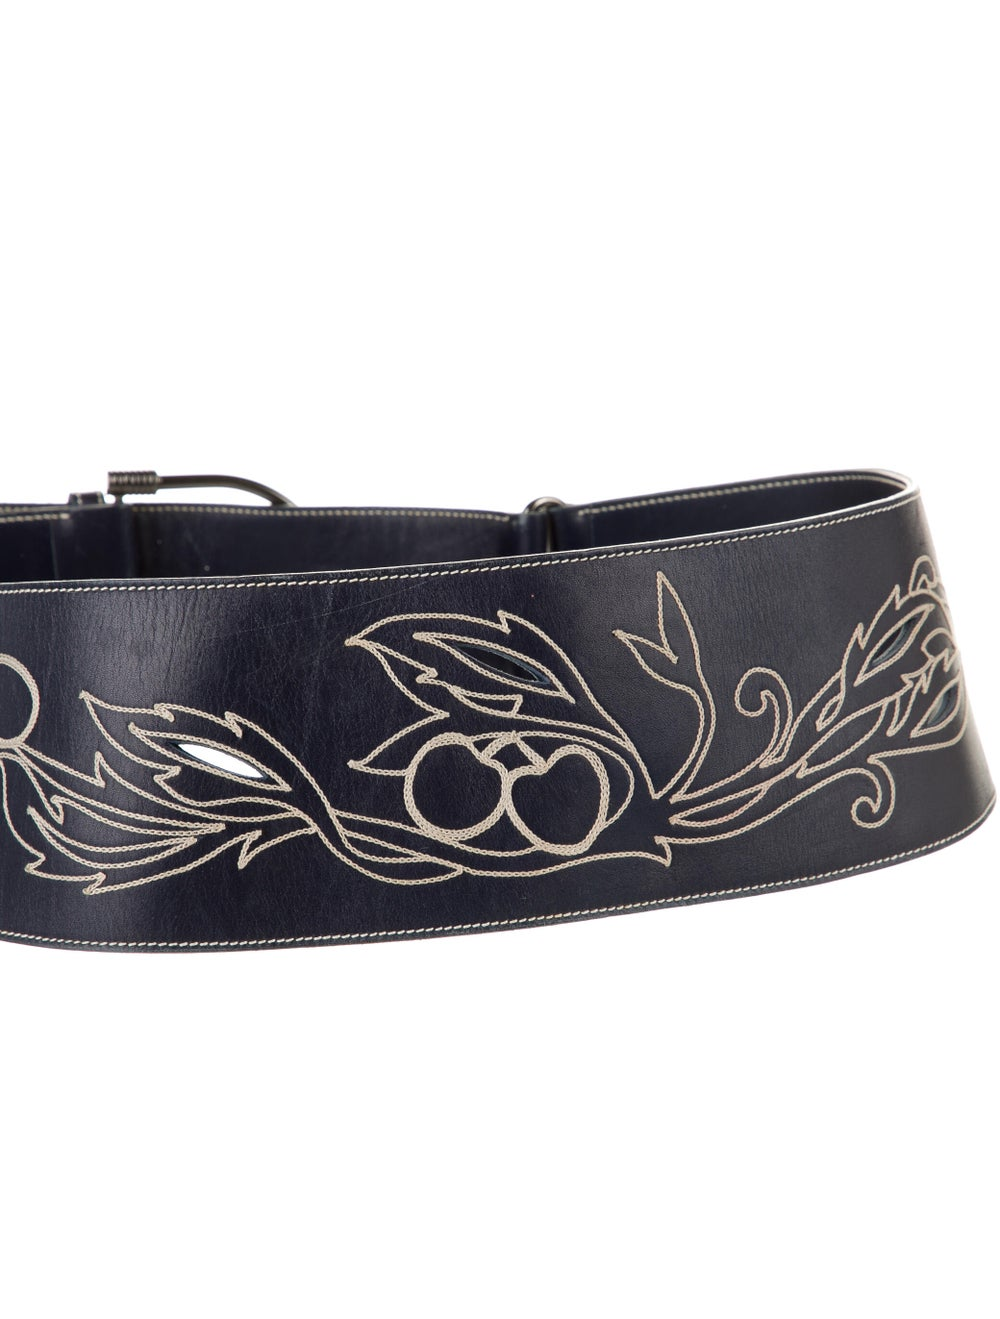 Gucci Embroidered Wide Belt Navy - image 2